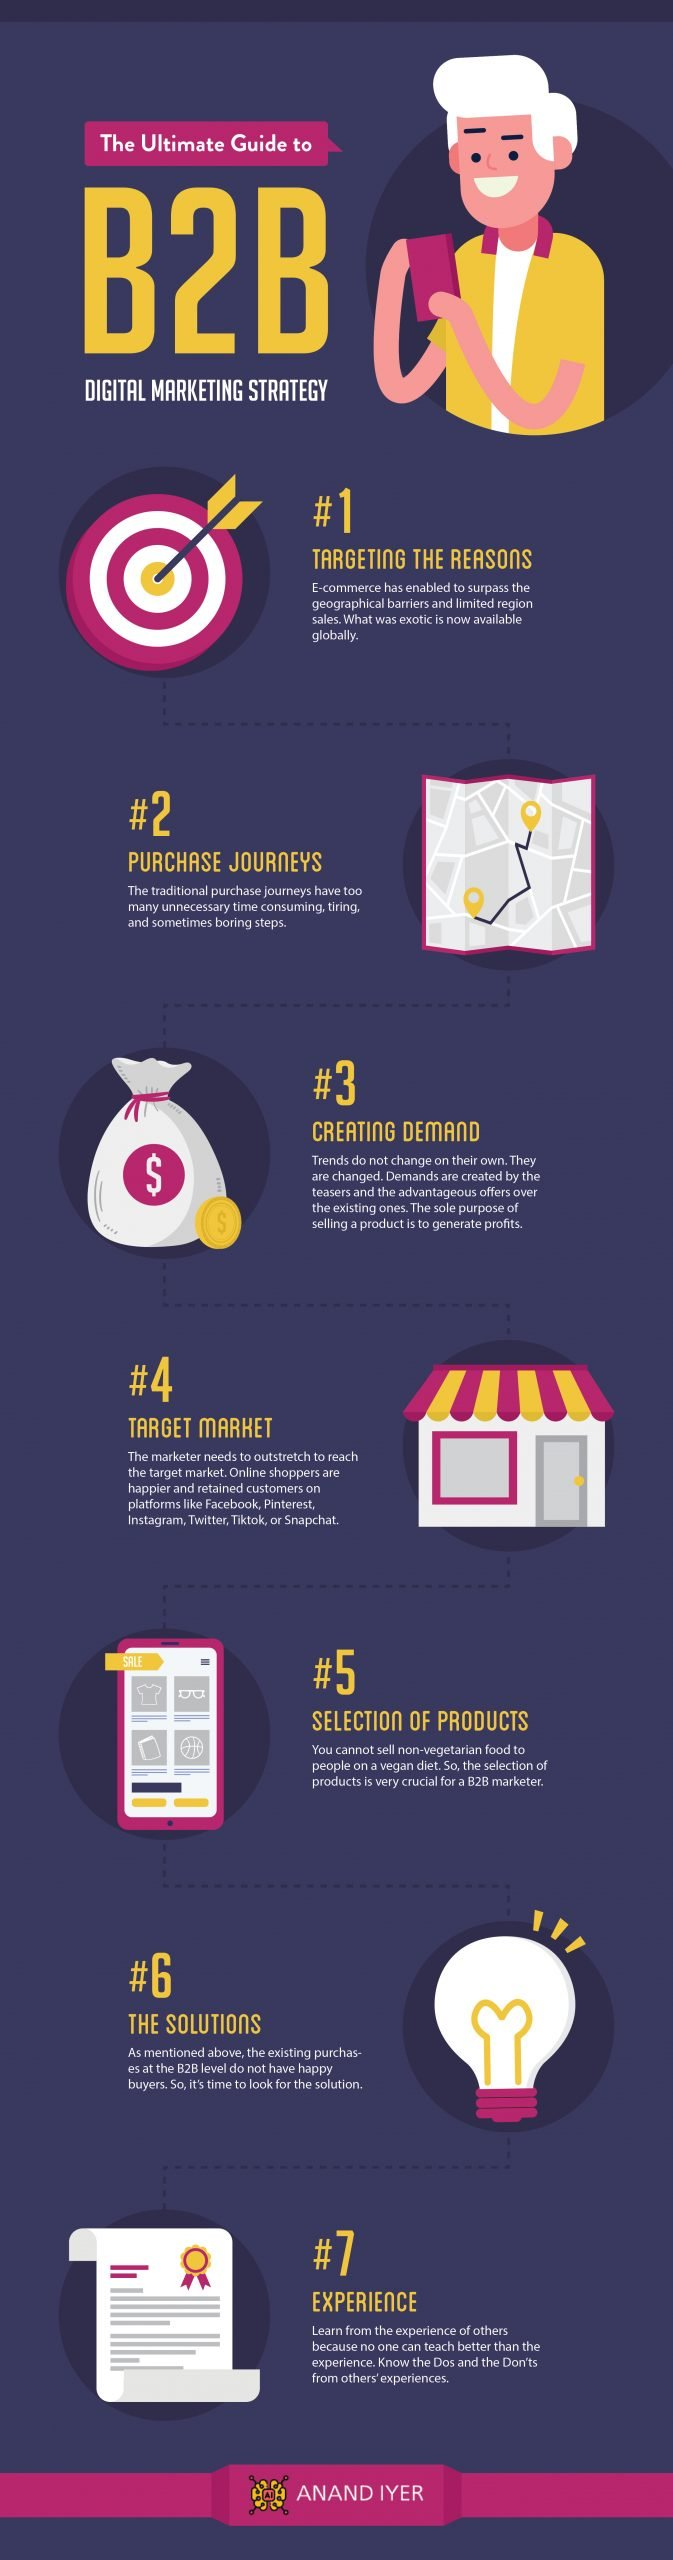 INFOGRAPHICS - THE ULTIMATE GUIDE TO B2B DIGITAL MARKETING STRATEGY